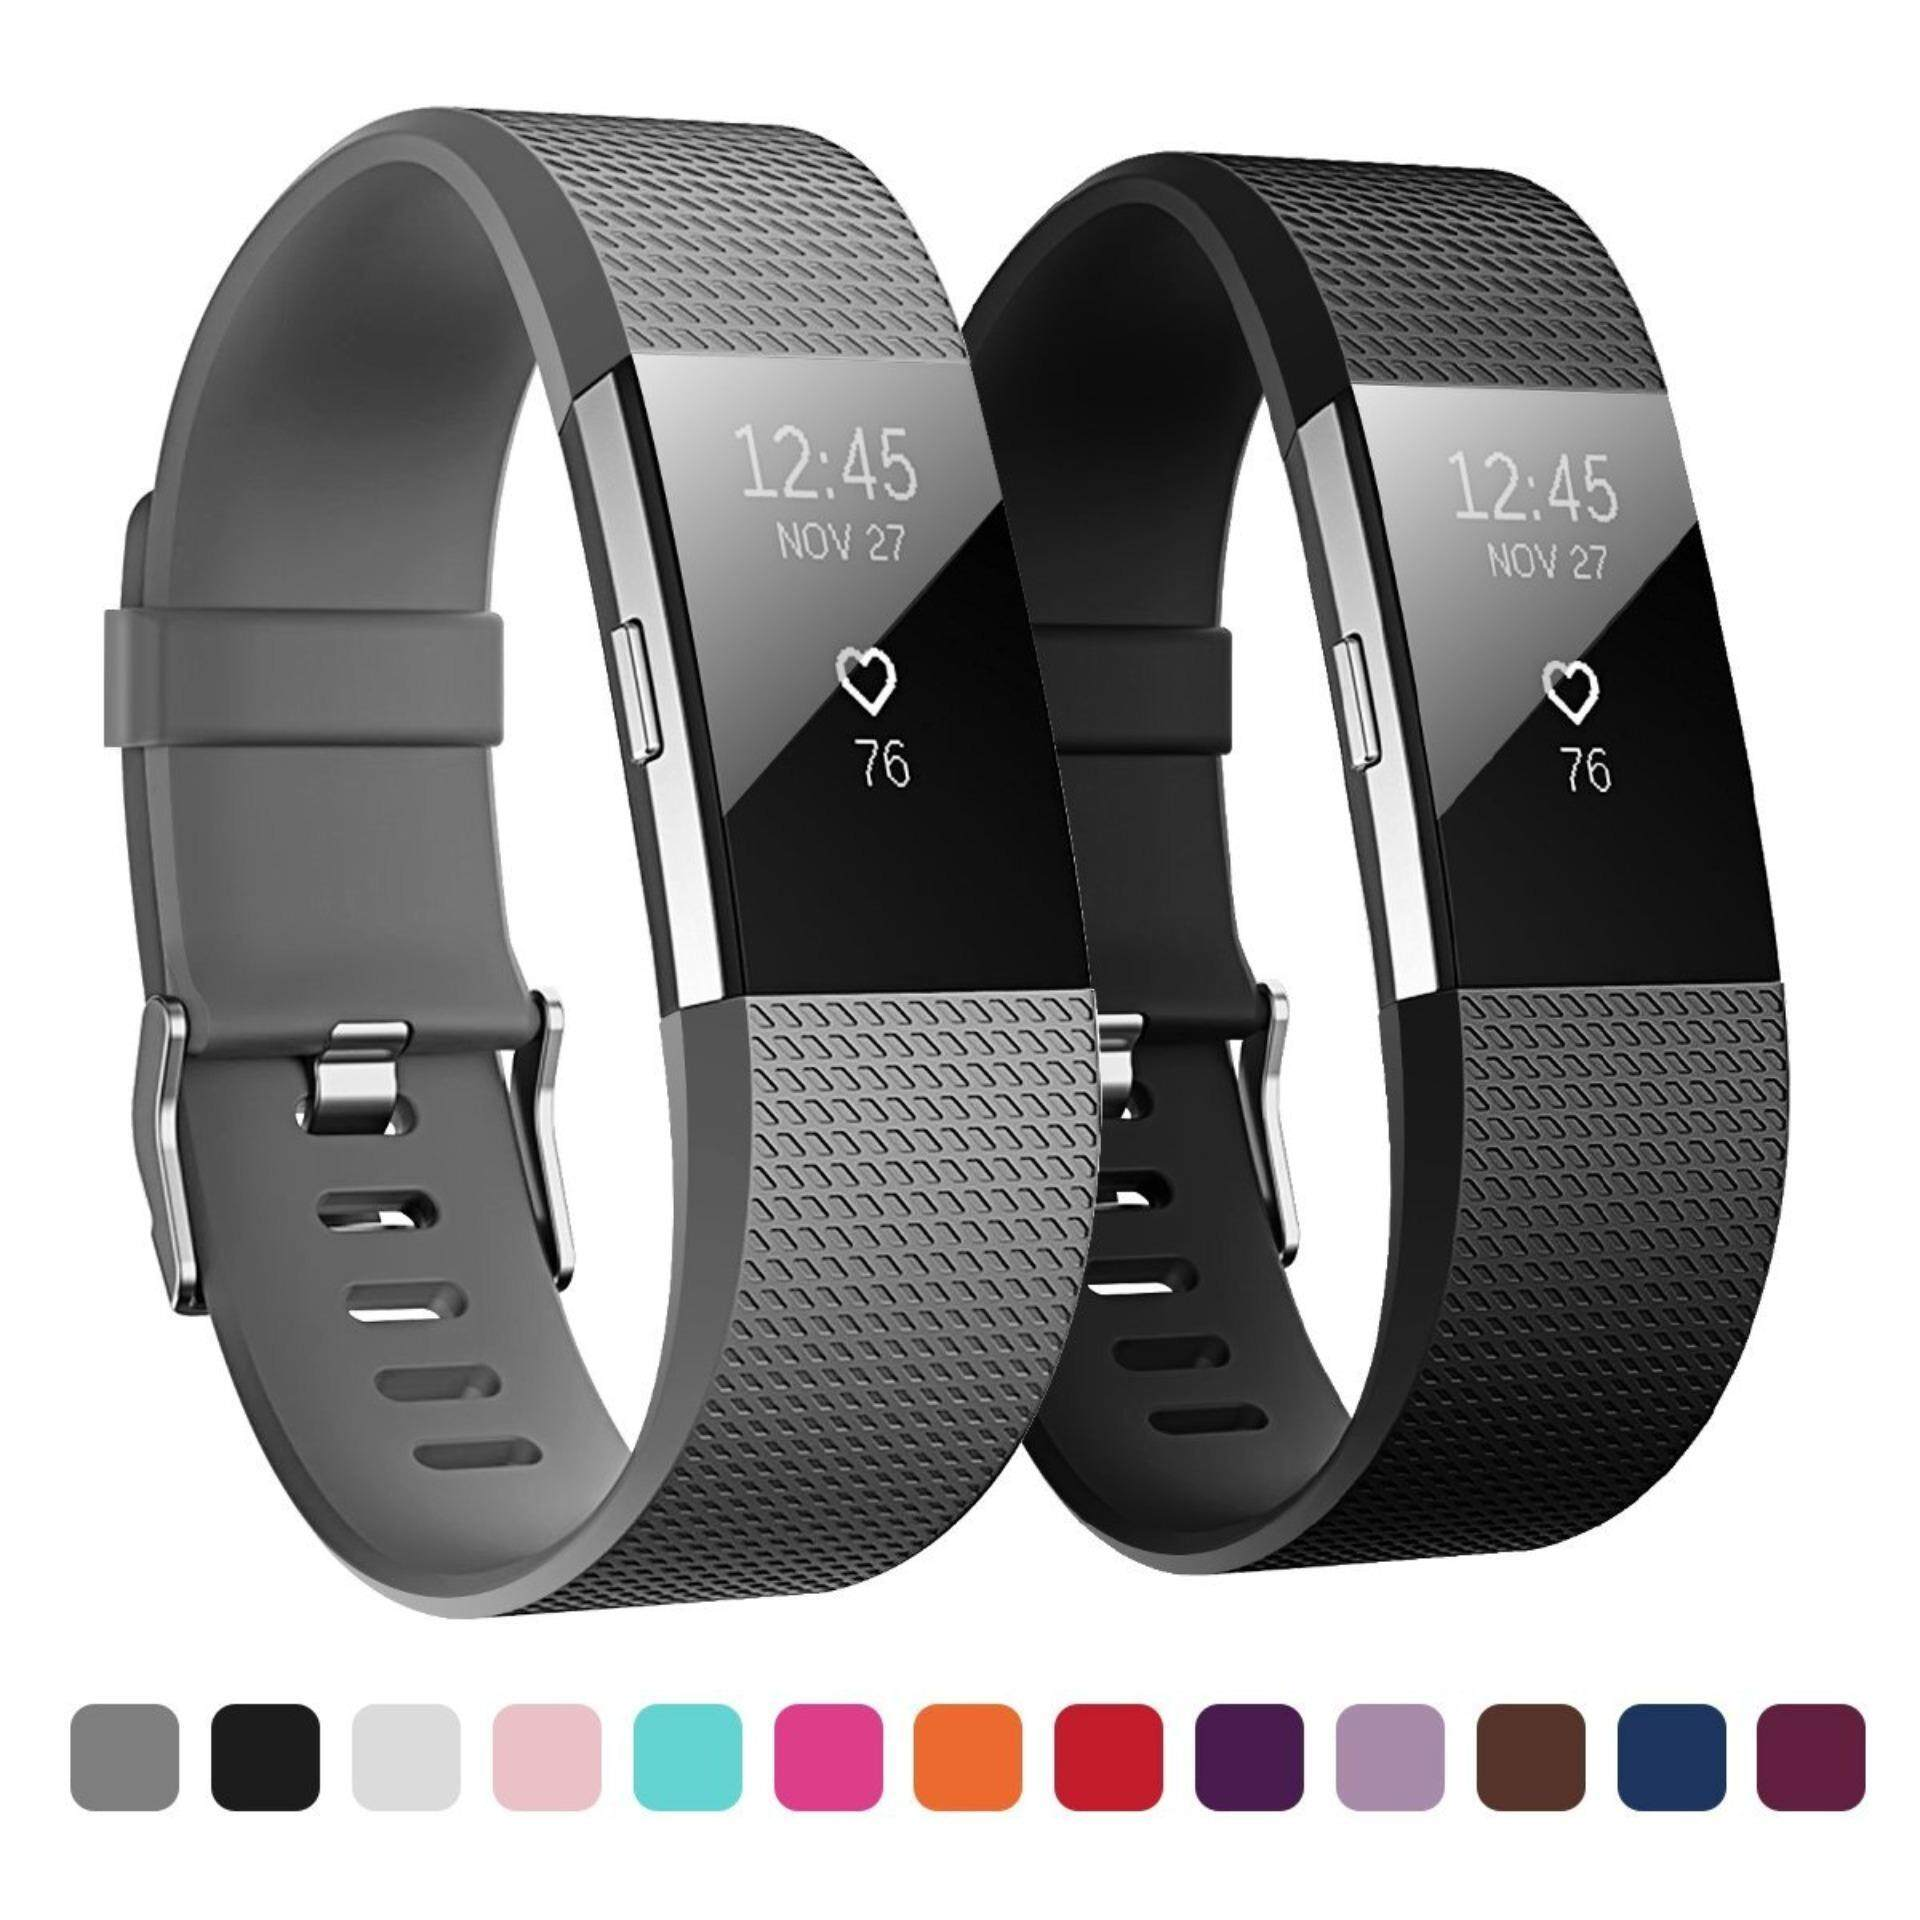 2 Pack Adjustable Soft Silicone Replacement Sport Strap Bands for Fitbit Charge 2 Smartwatch Fitness Tracker